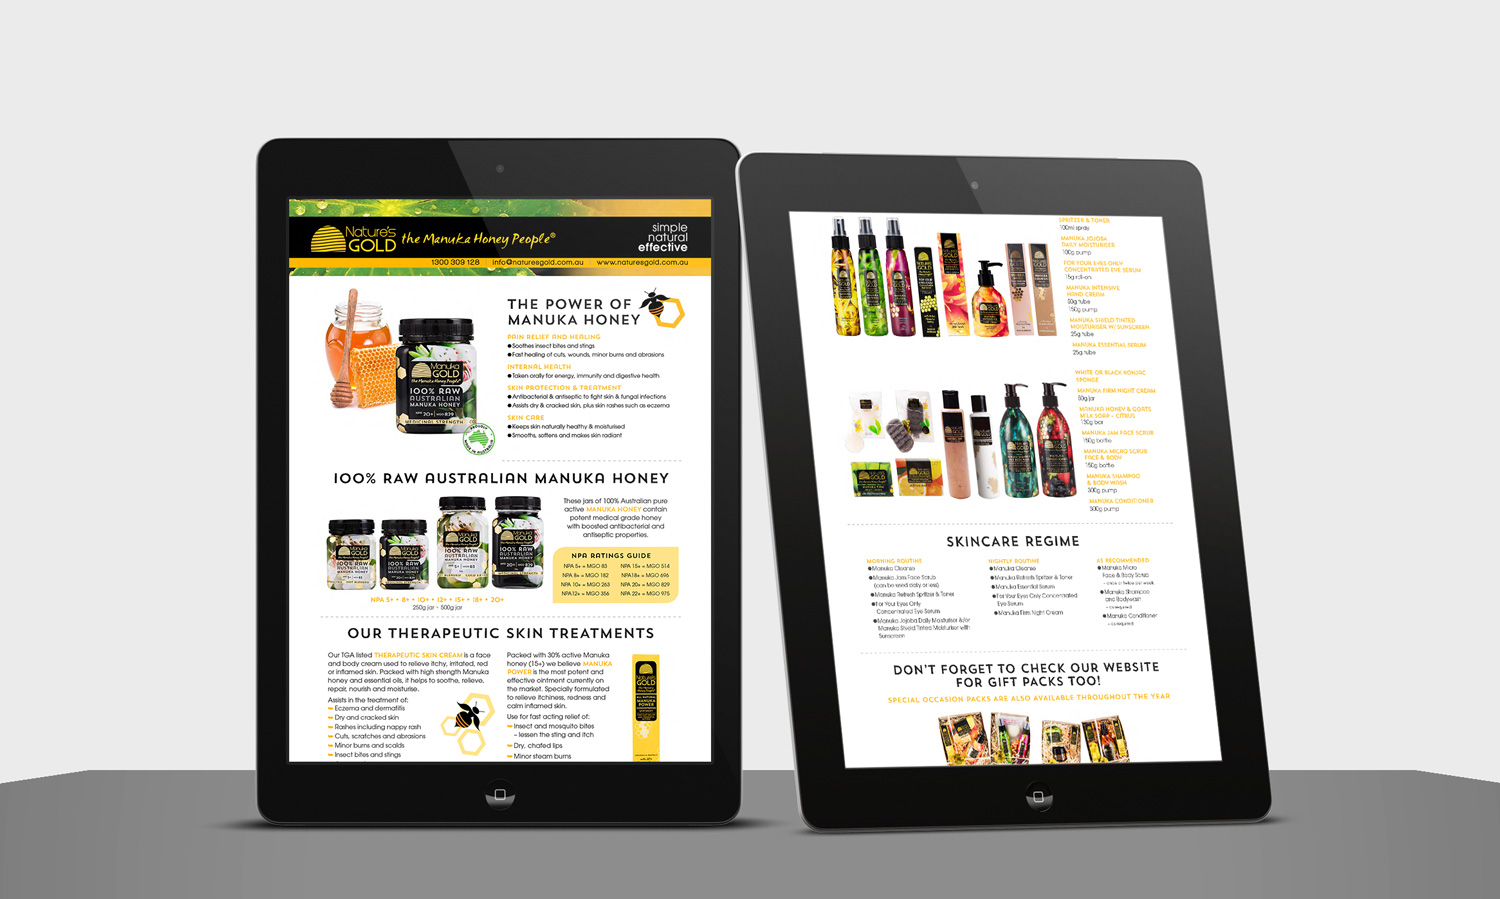 Email version of product flyer